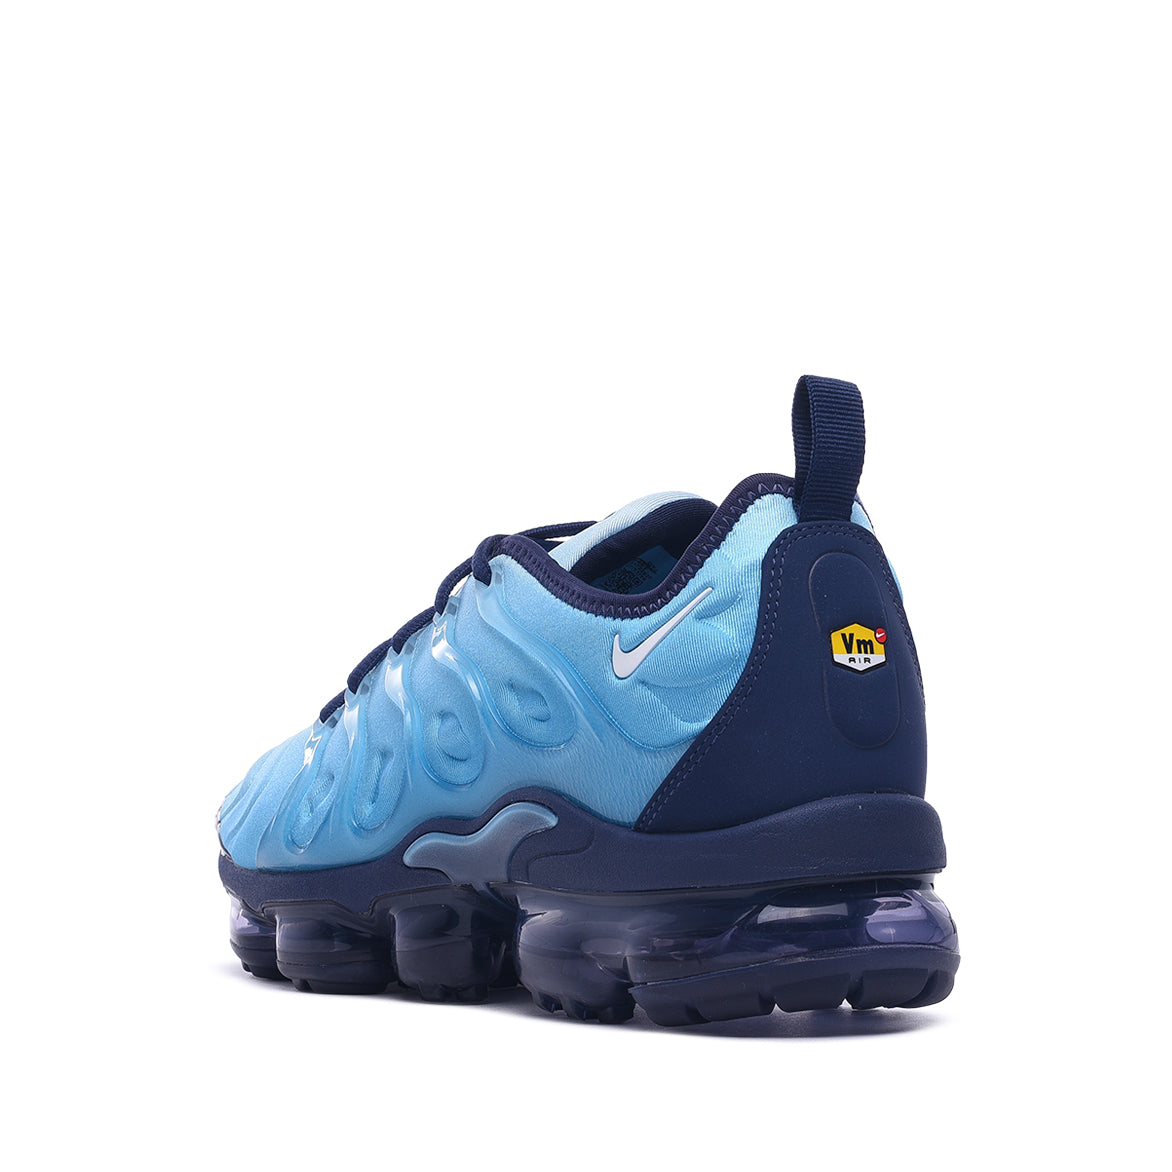 AIR VAPORMAX PLUS - LIGHT CURRENT BLUE / WHITE